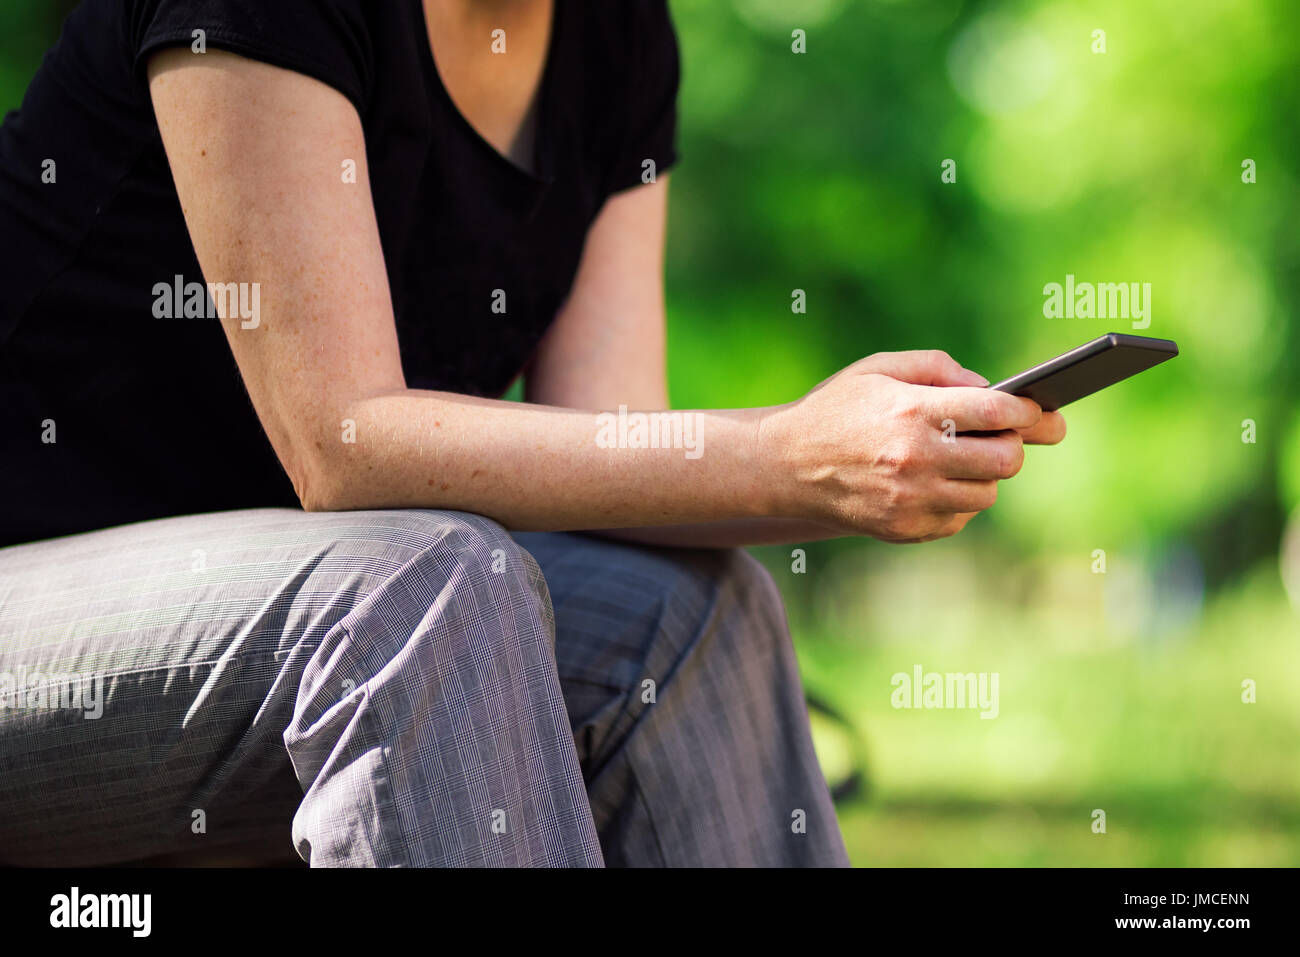 Social network addict using smartphone outdoors in park to share, follow and post to social media - Stock Image